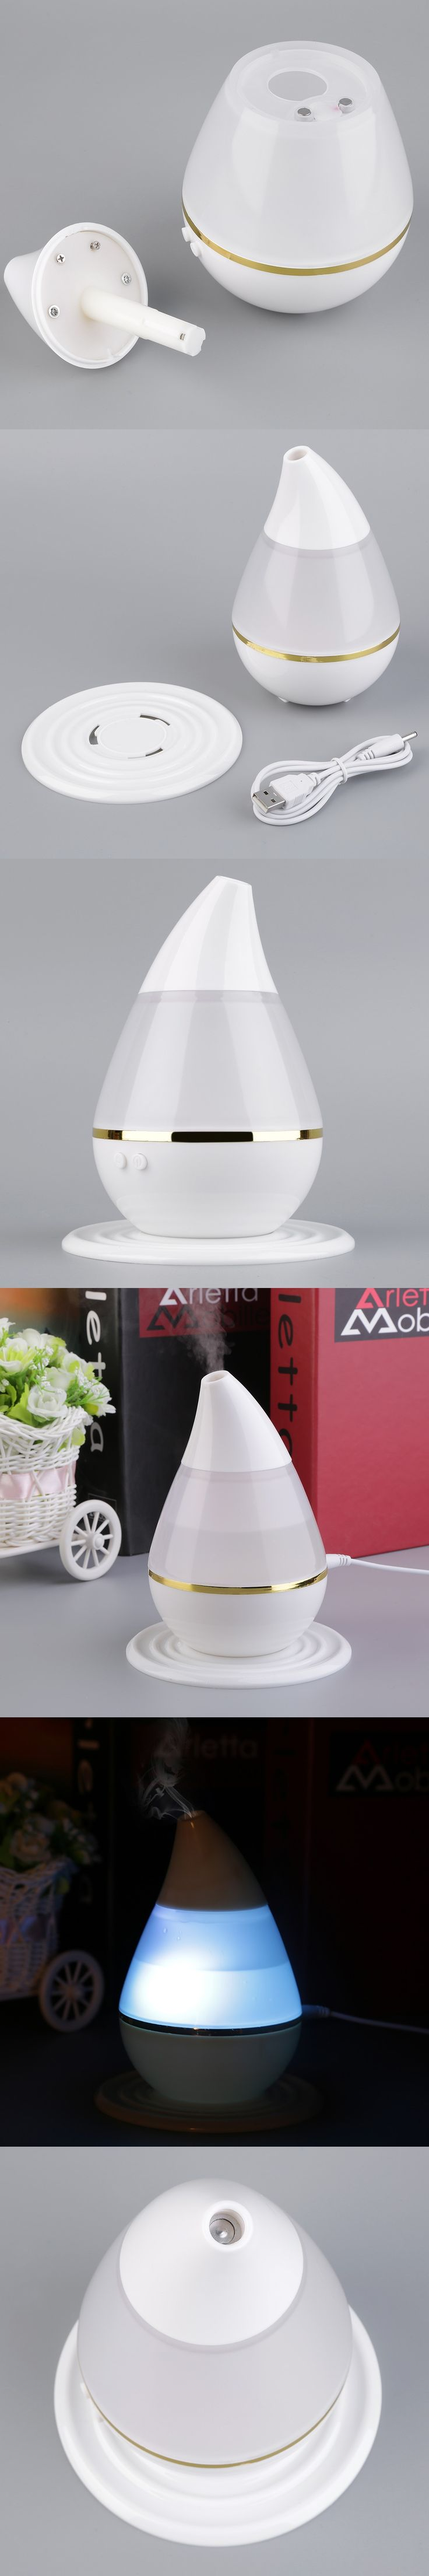 Ultrasound USB Air Humidifier Purifier 7 Colors Changing LED Aroma Atomizer Moisturizing Skin Care